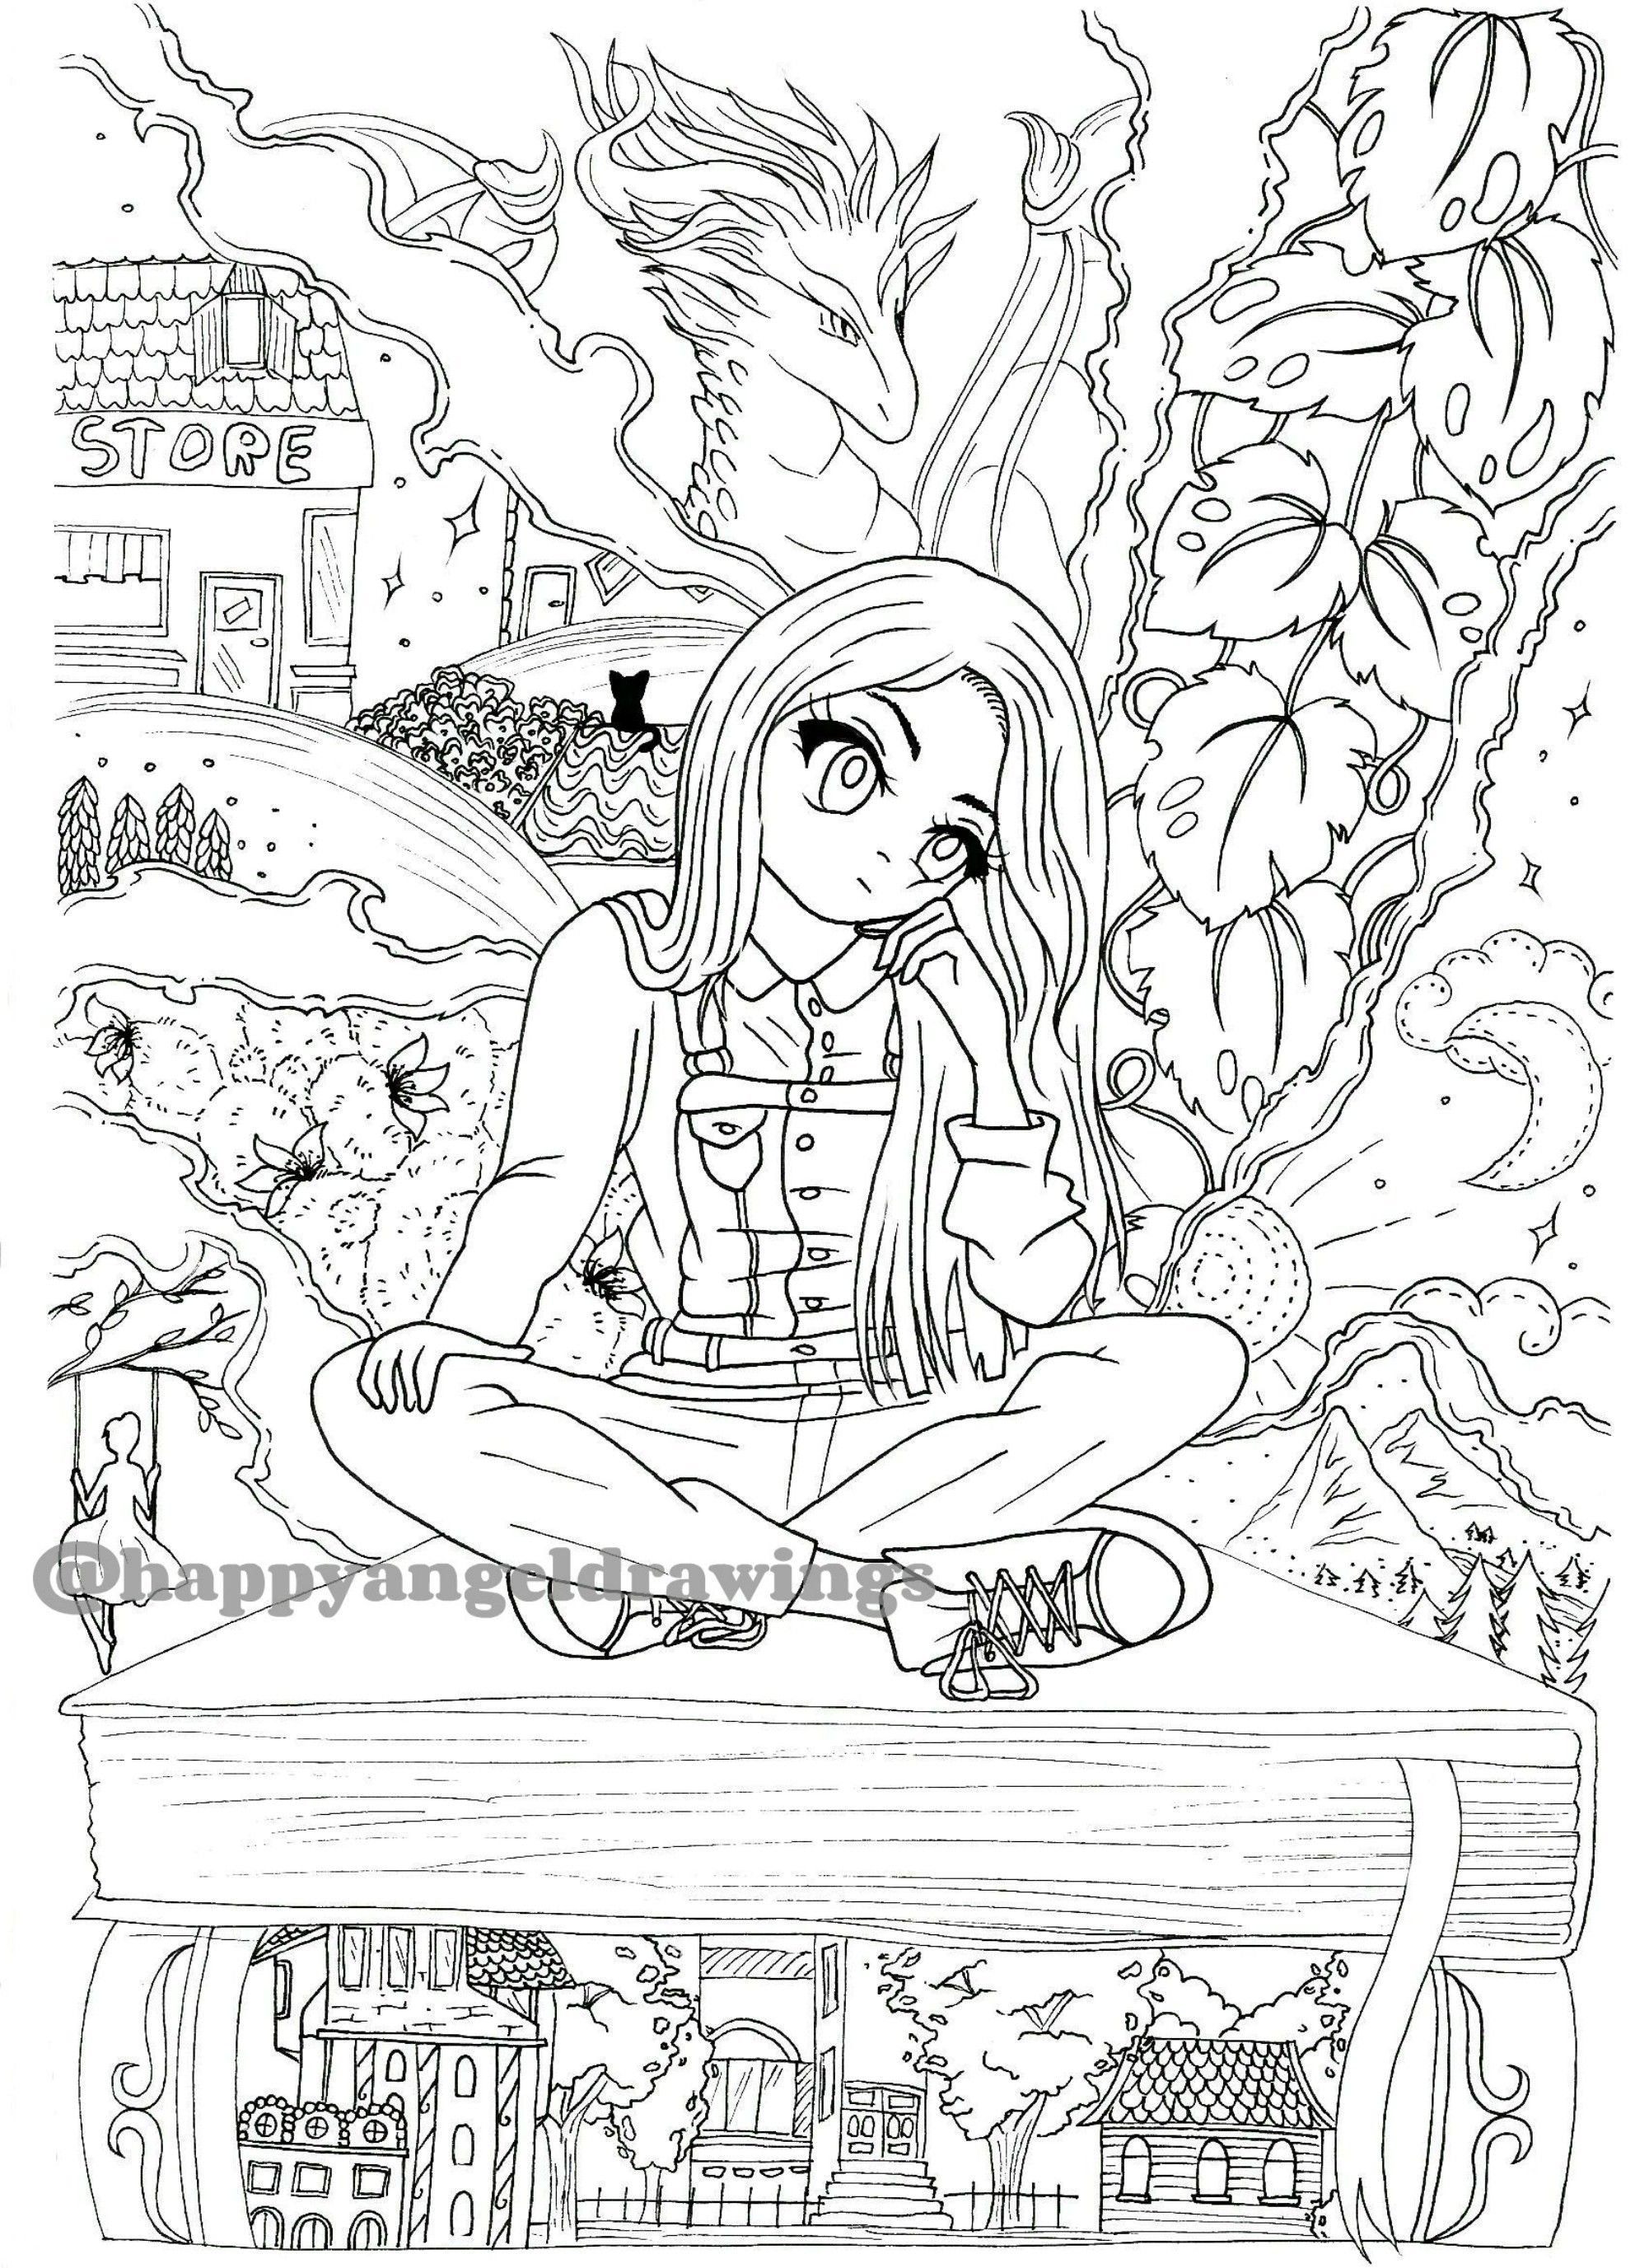 The Bookworm Coloring Page Etsy Coloring Pages Book Worms How To Draw Hands